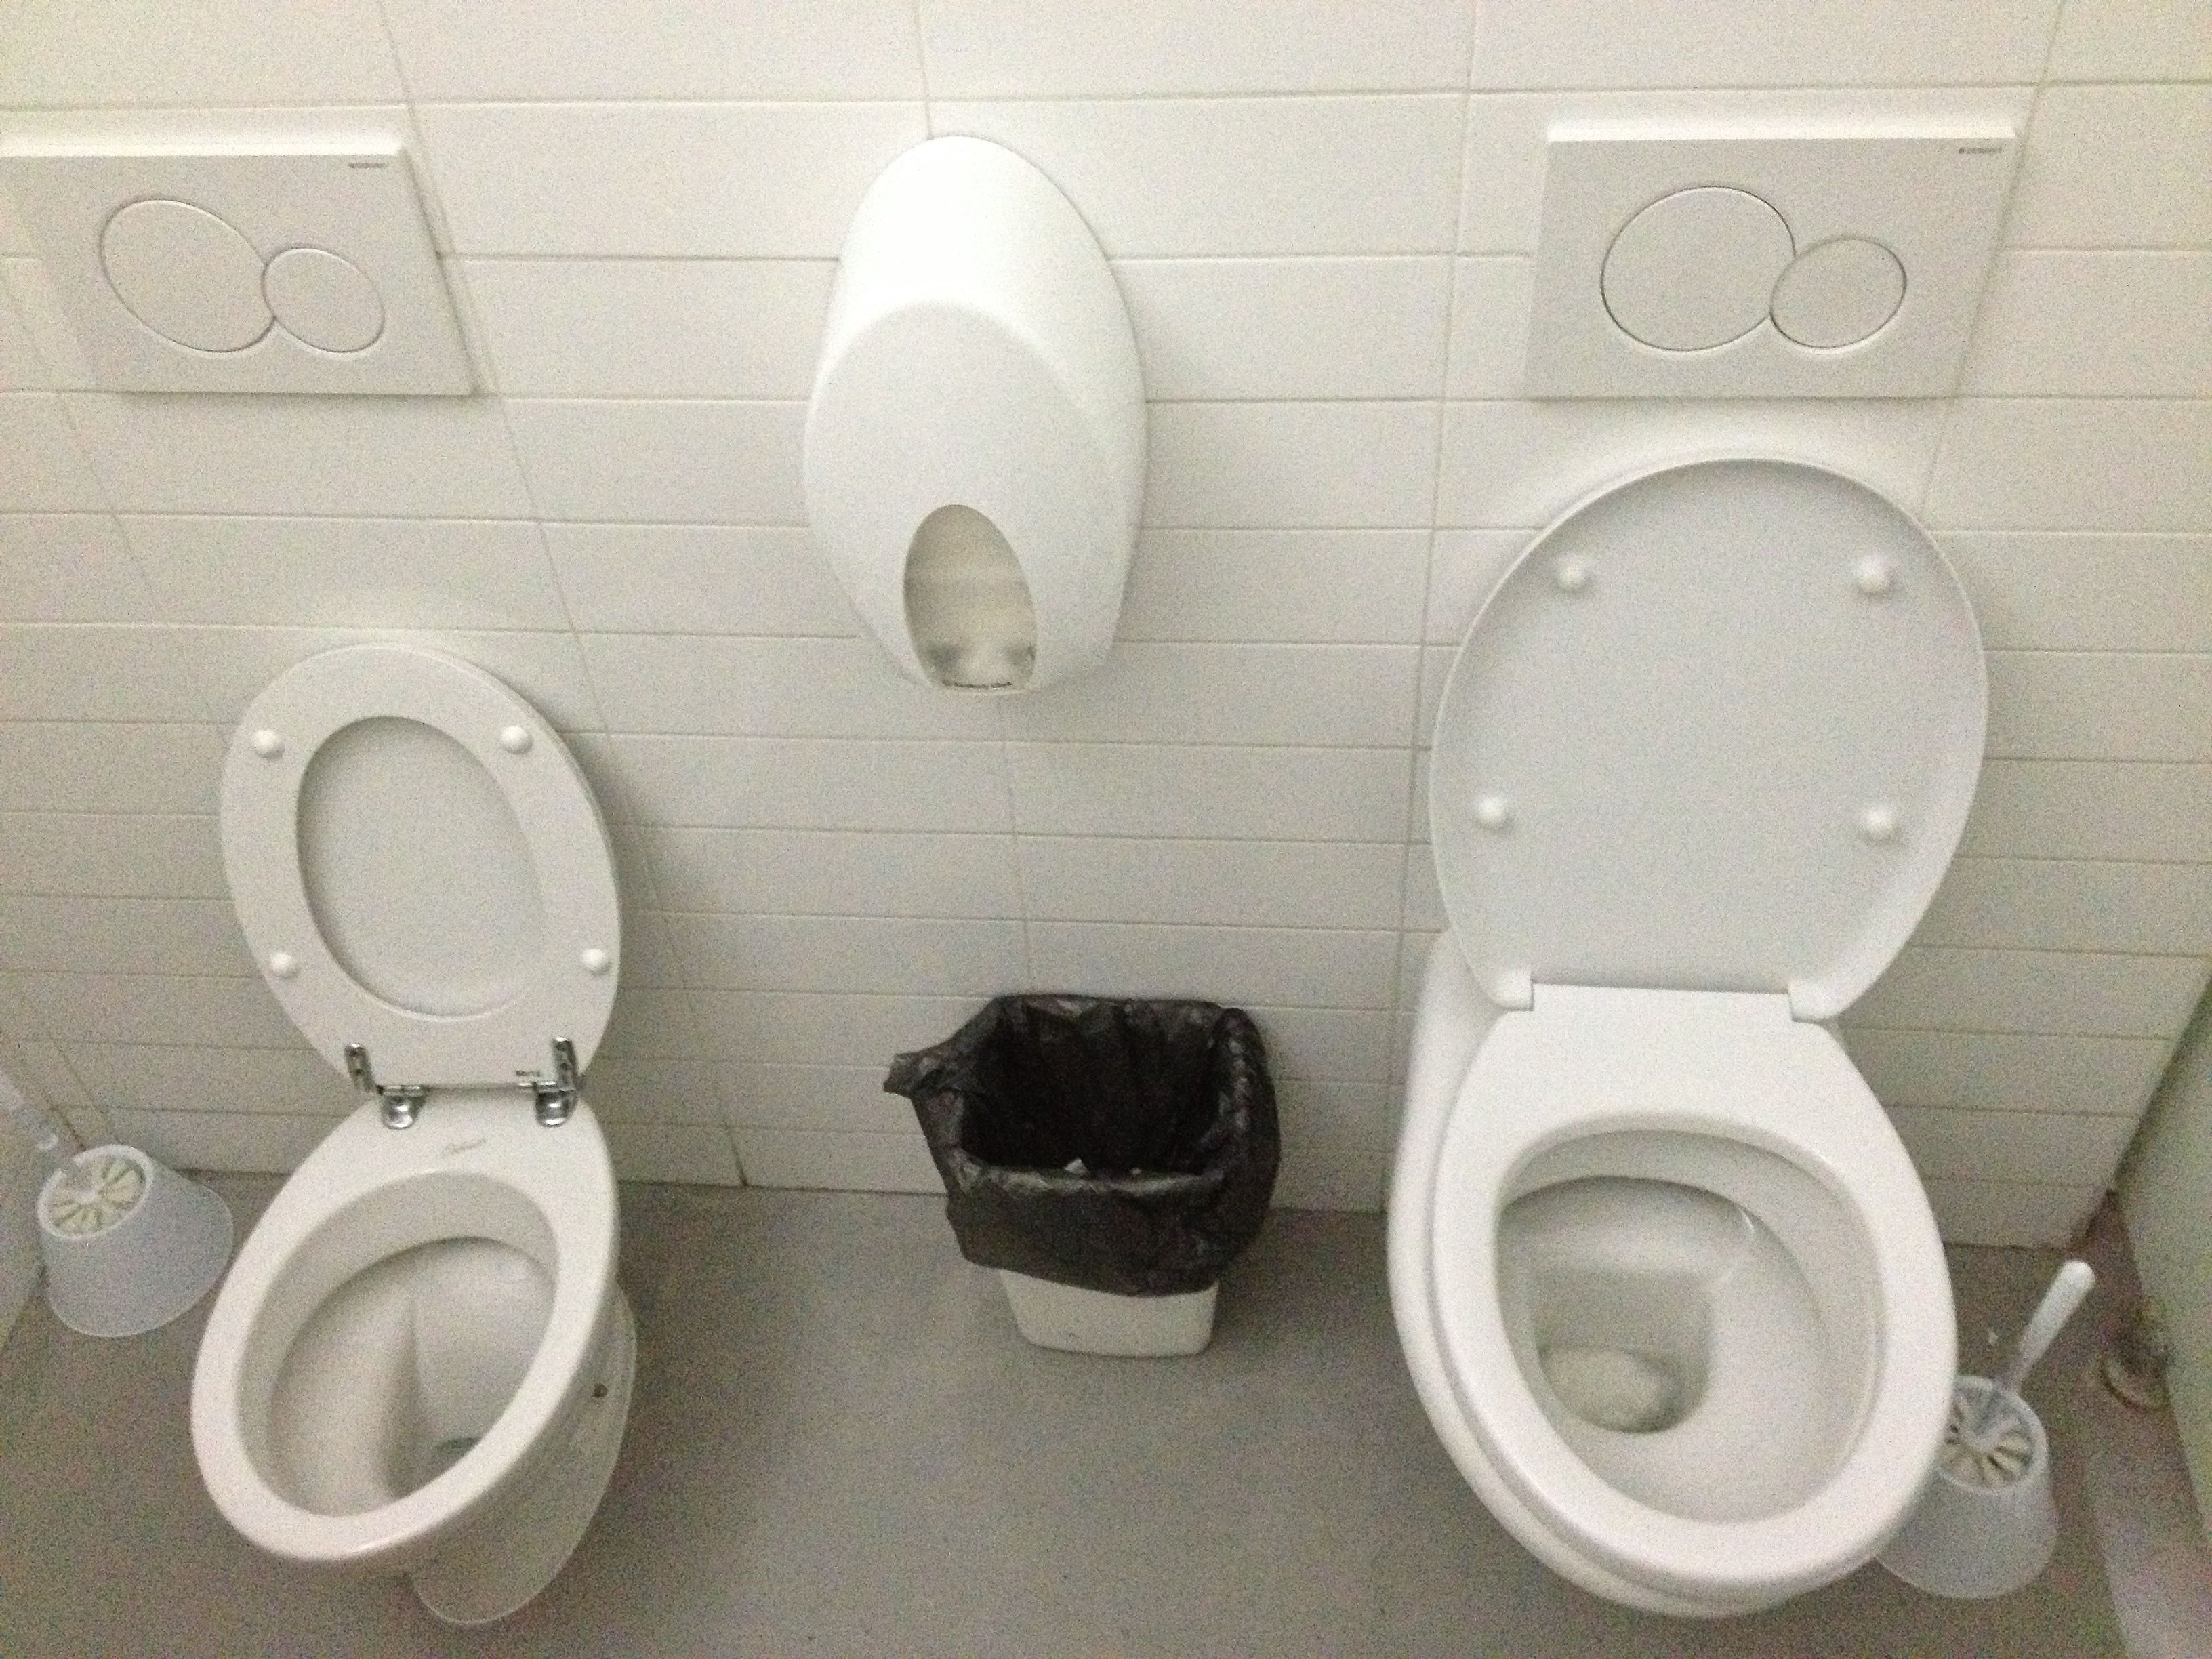 Italian 101 – How to ask where is the toilet?